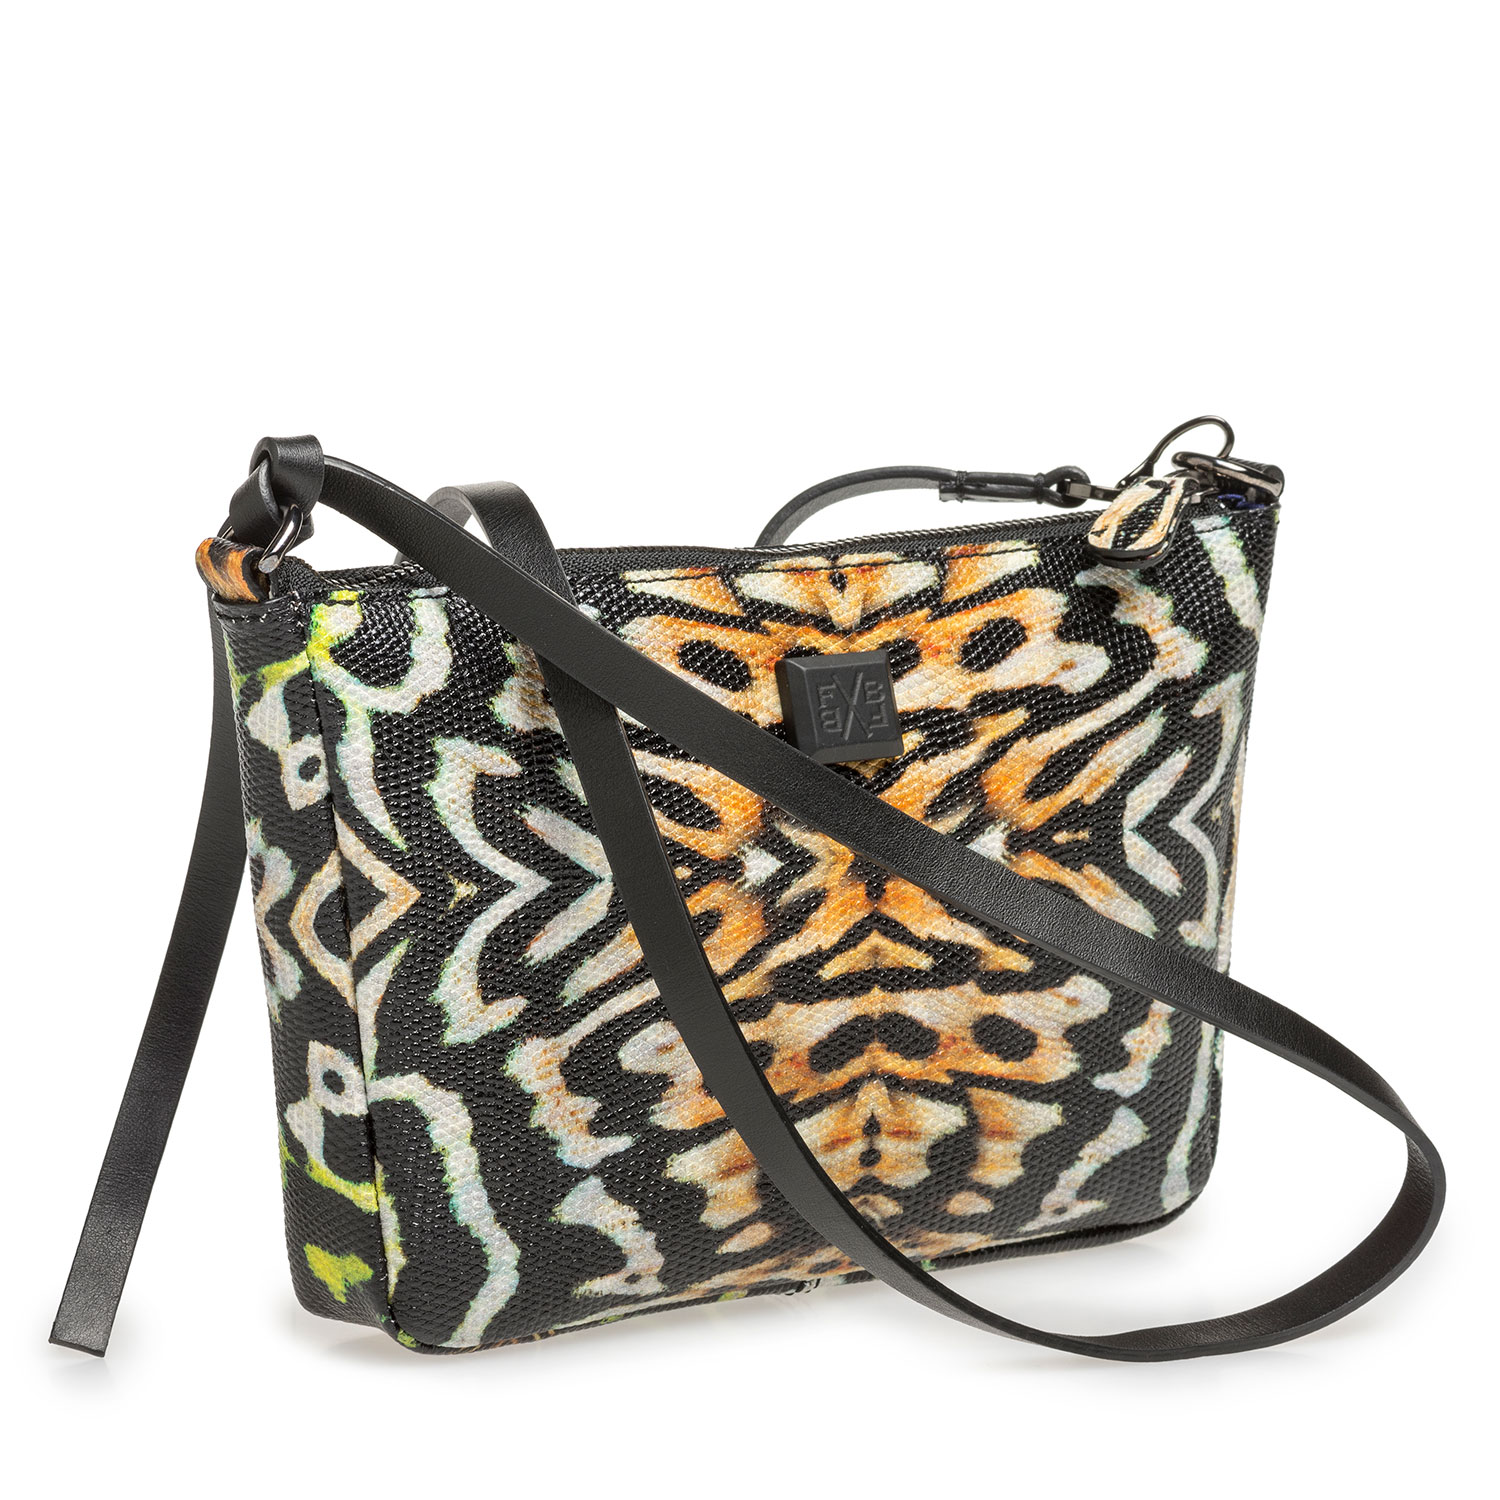 89019/00 - Black leather bag with orange-coloured print